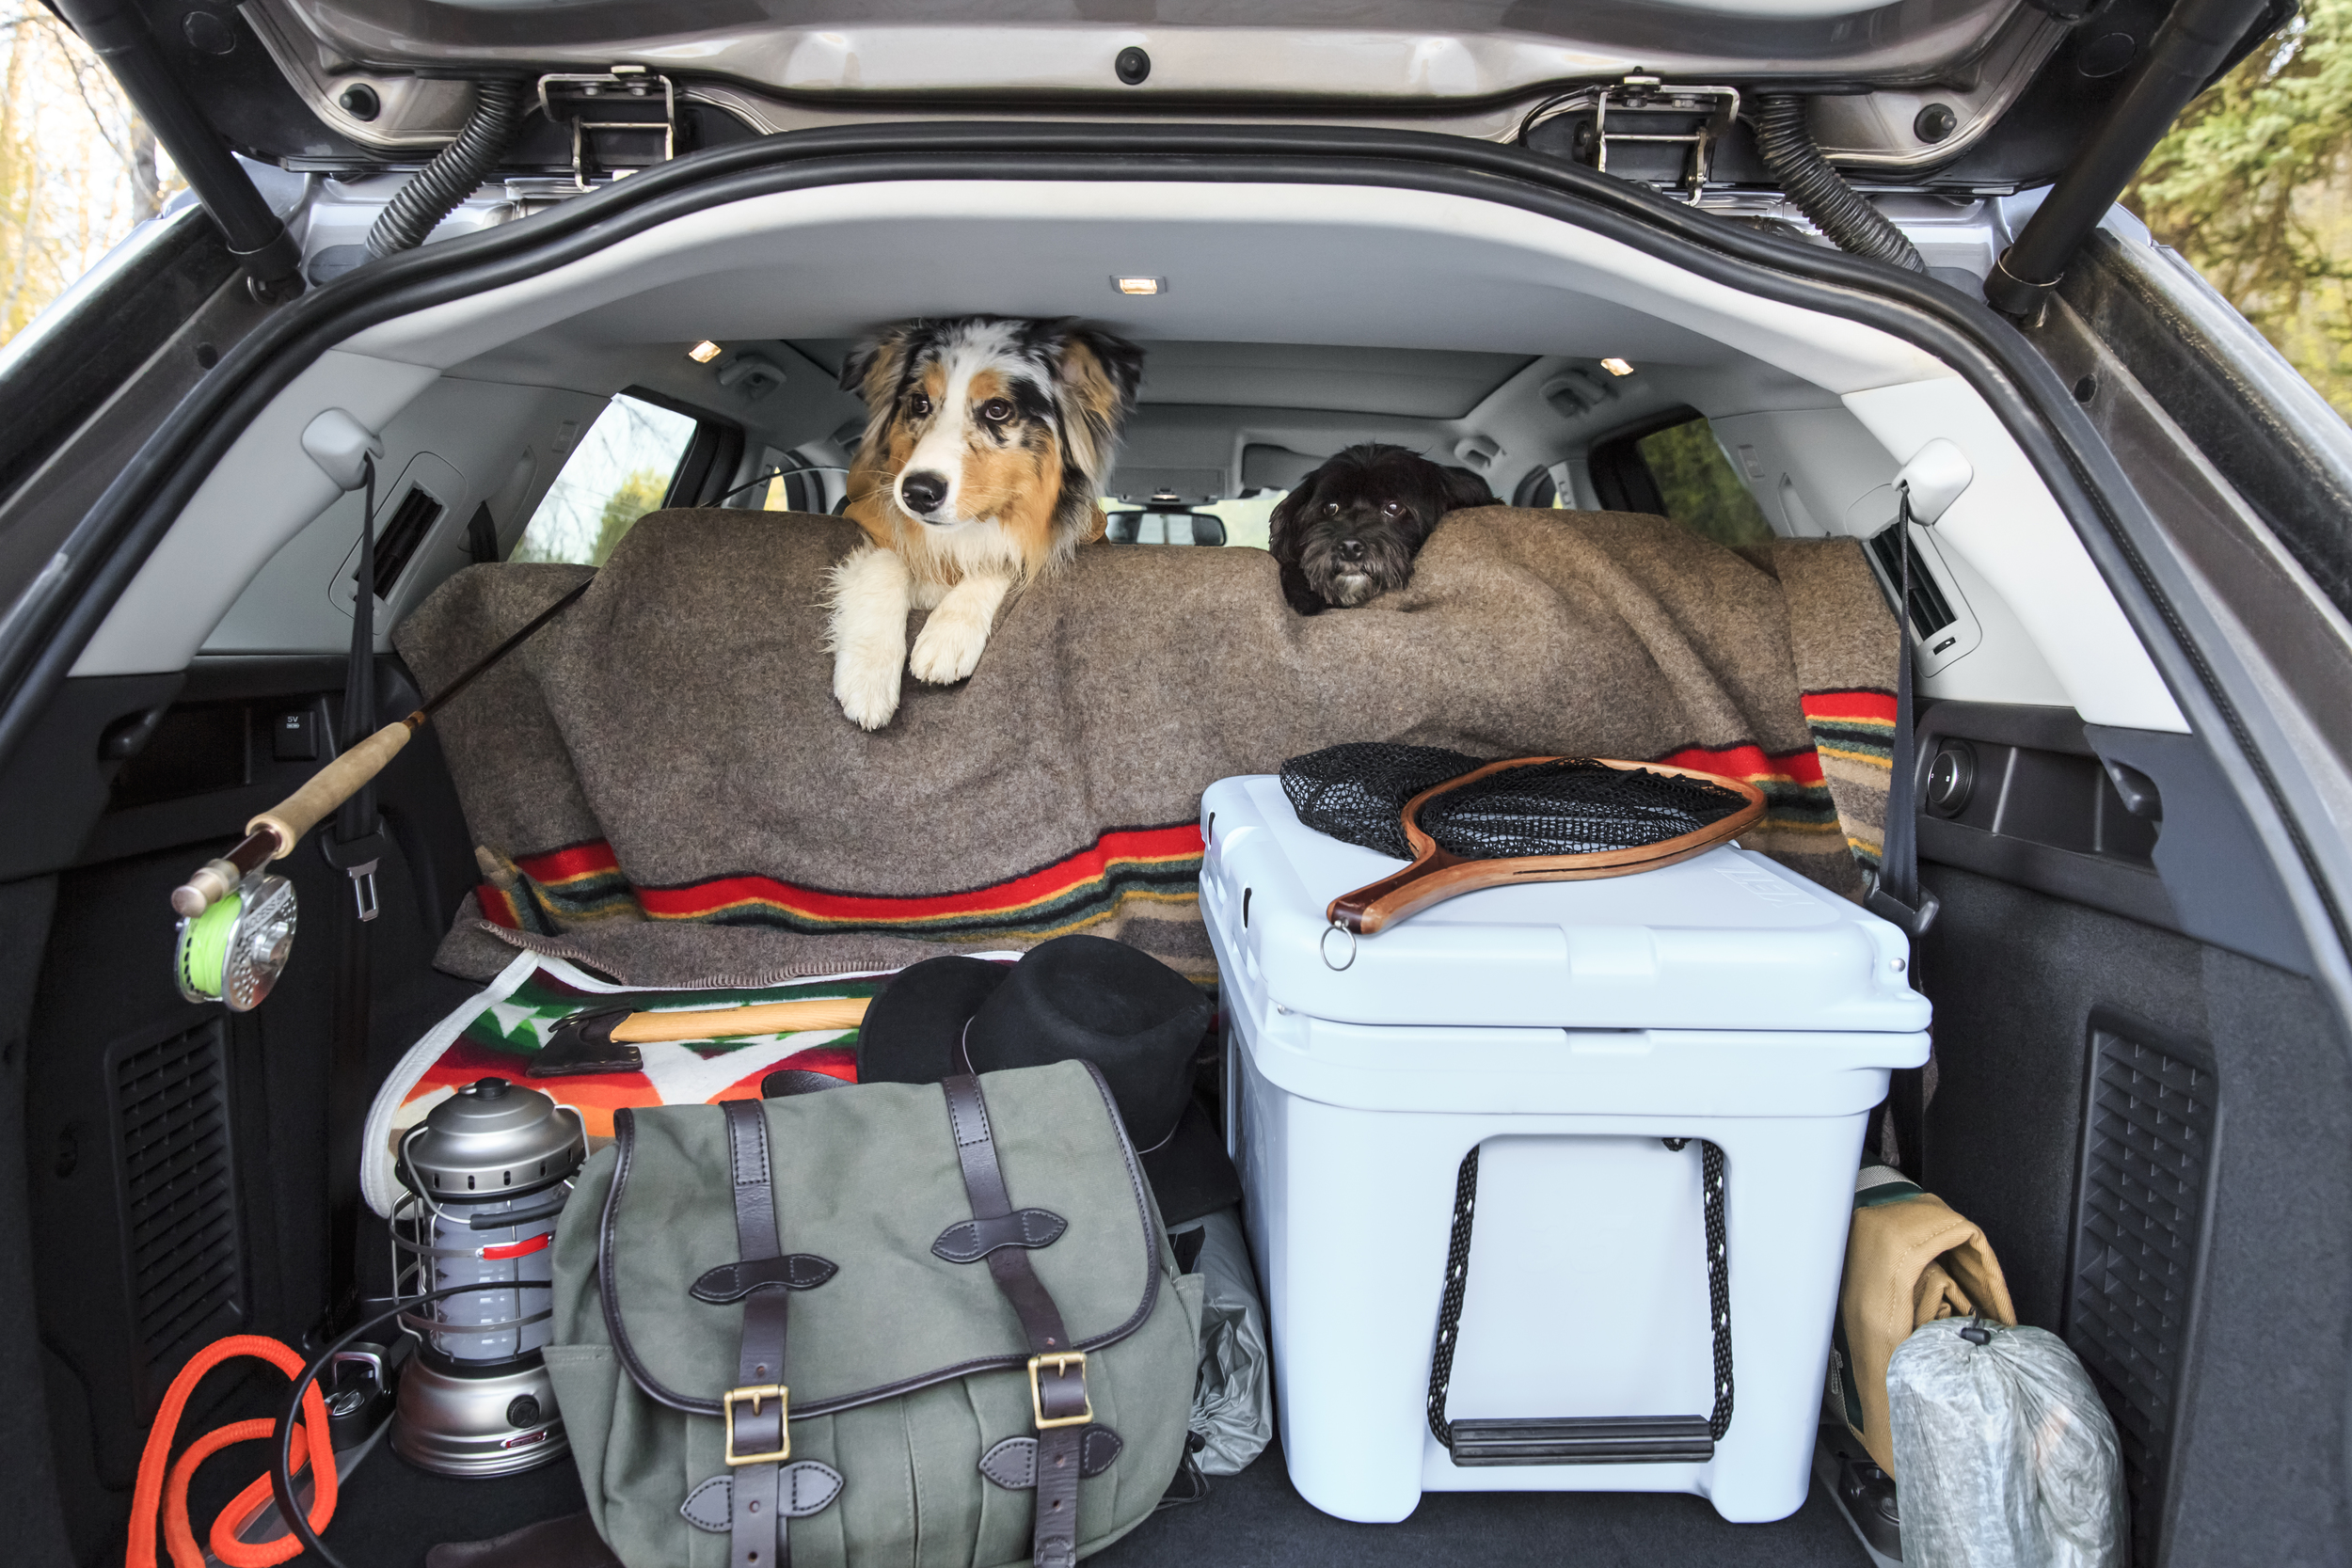 Presto Pups and Dusty to trusty dog ready to go in the back of our Land Rover during our road trip to Wyoming